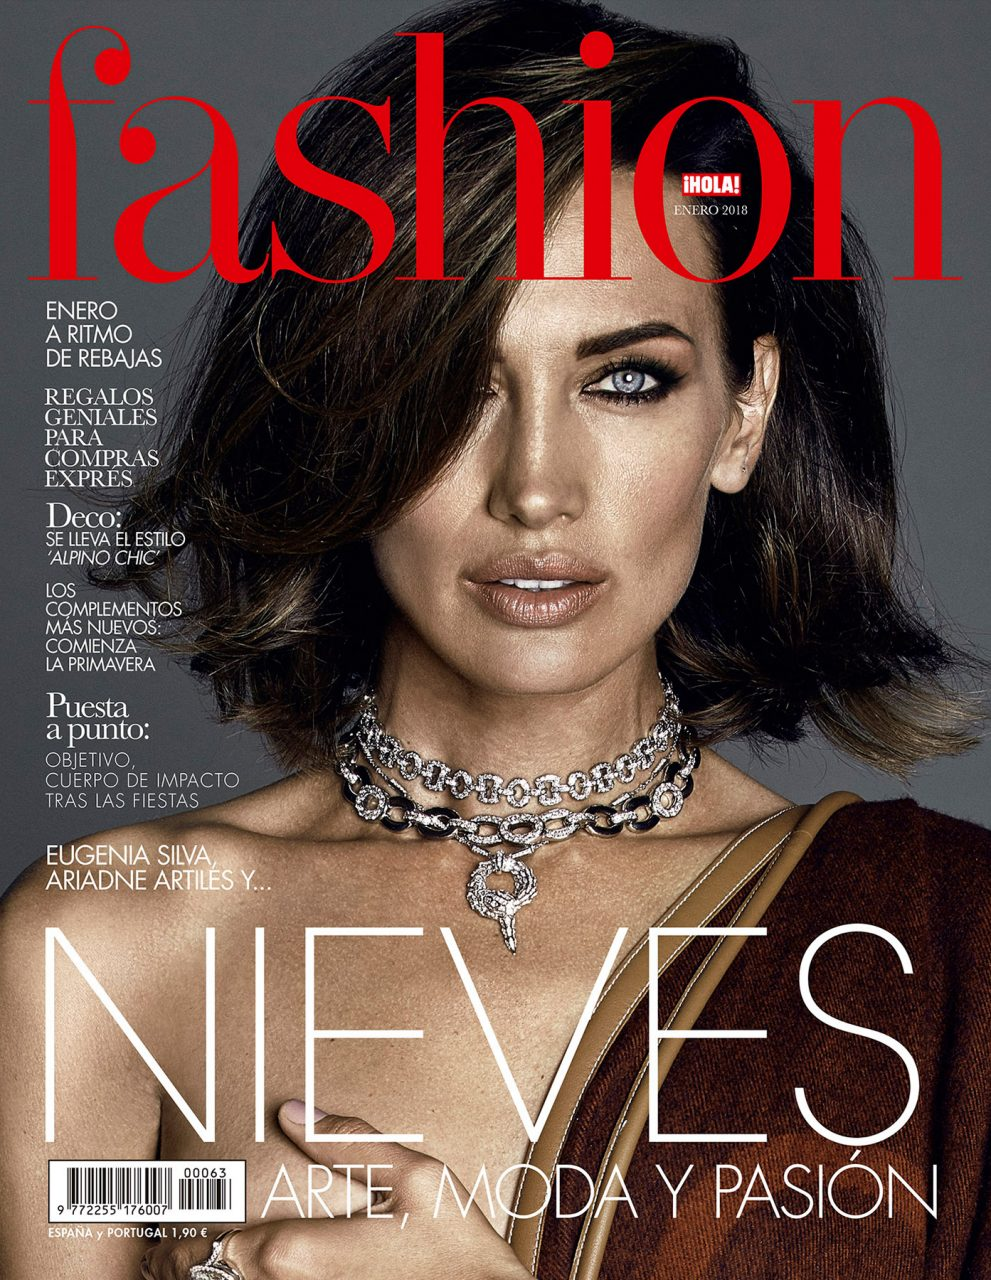 Cactus Retouch cover Nieves Alvarez Hola Fashion 1